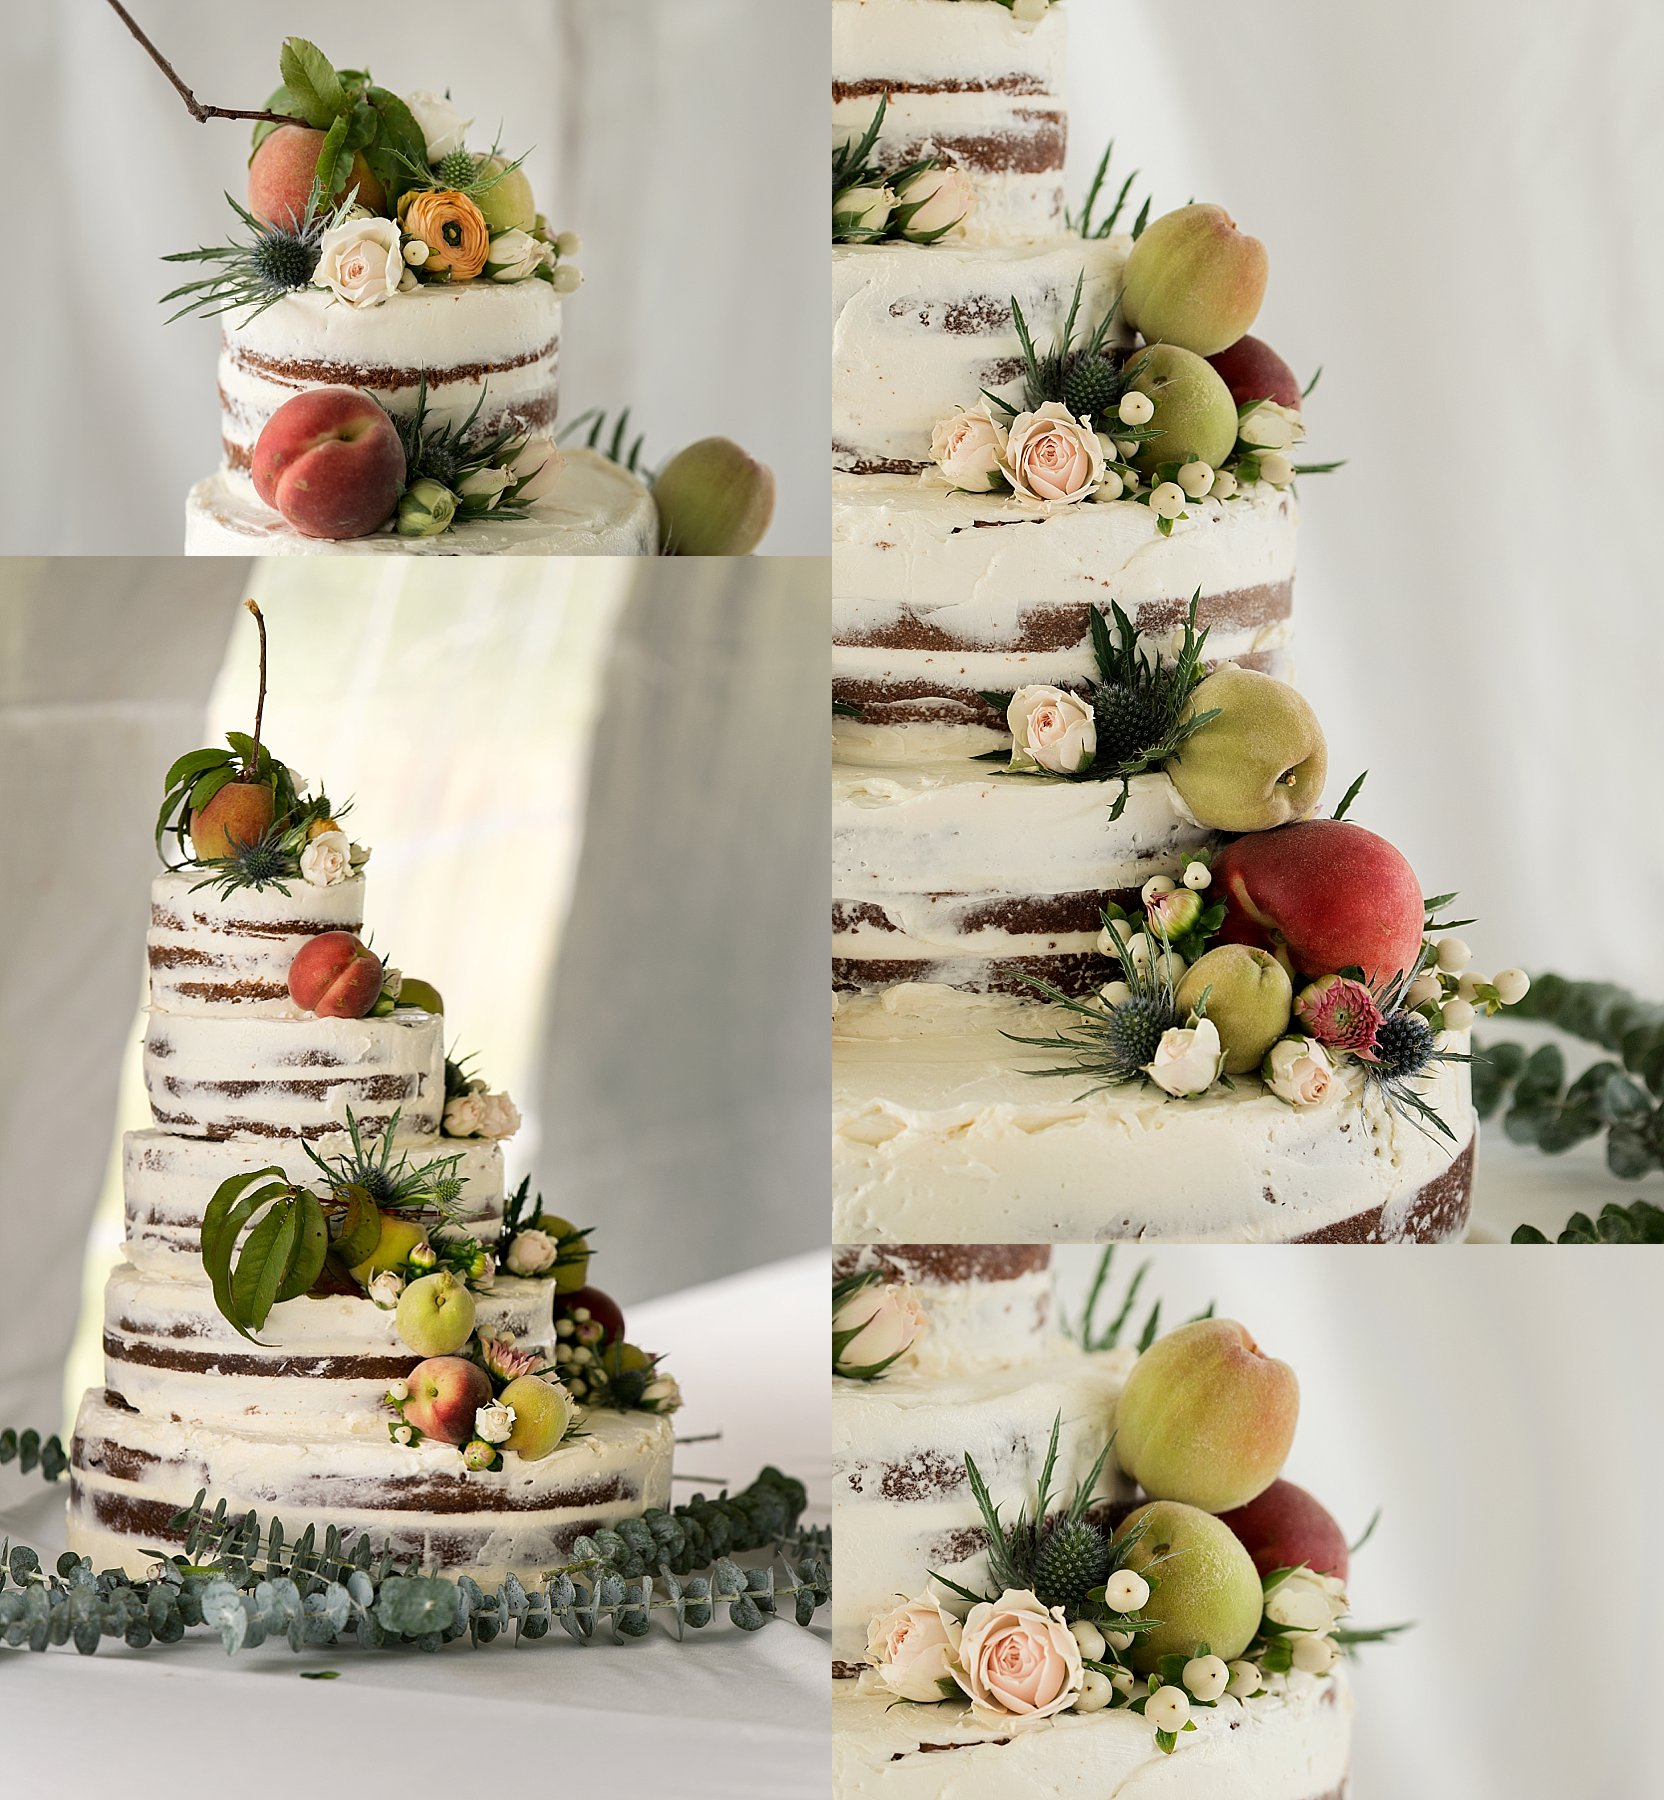 rustic peach wedding cake. CT wedding photographer.